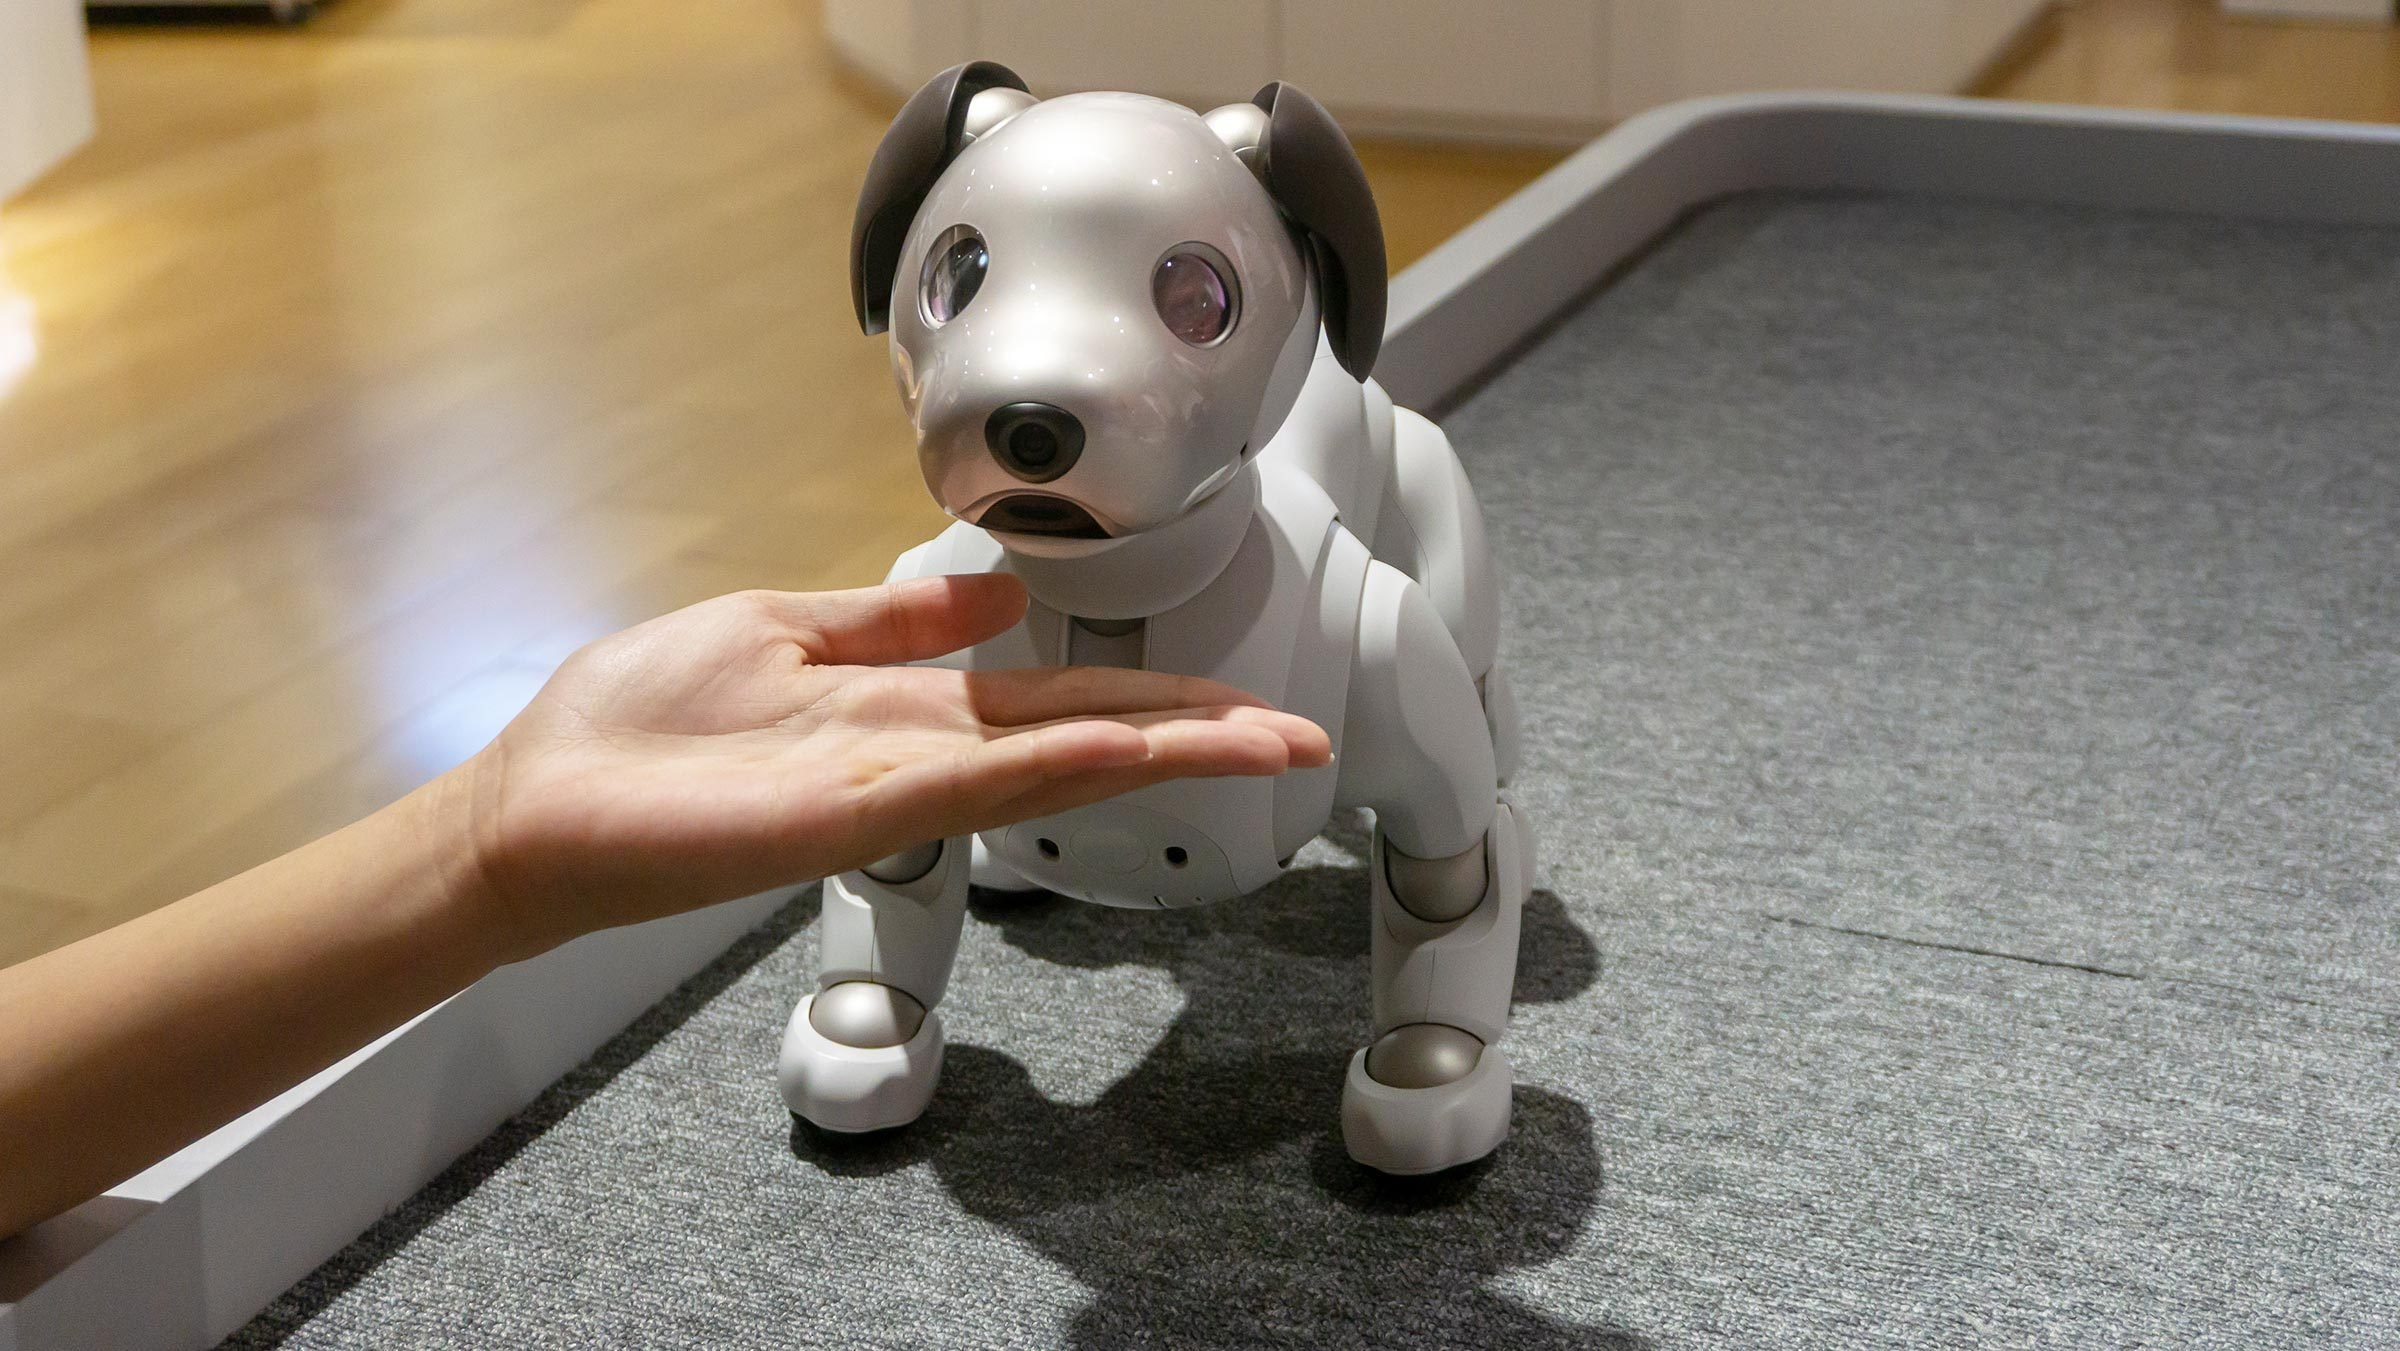 Tokyo, Japan - August 2018: Unidentified woman playing with Aibo during a demonstration in Sony Showroom in Tokyo